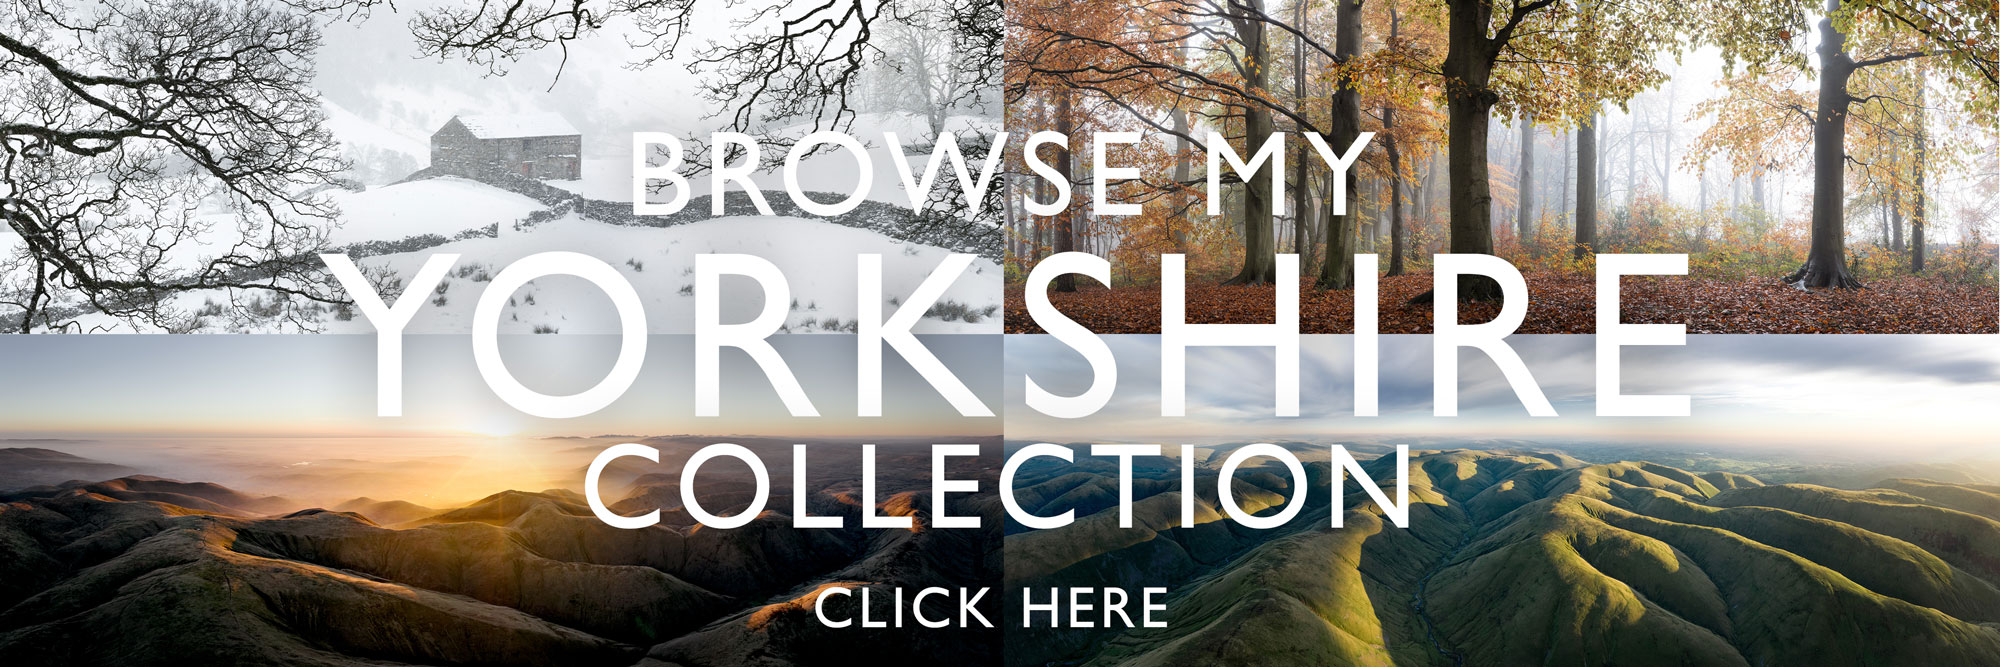 Yorkshire Dales photography gallery